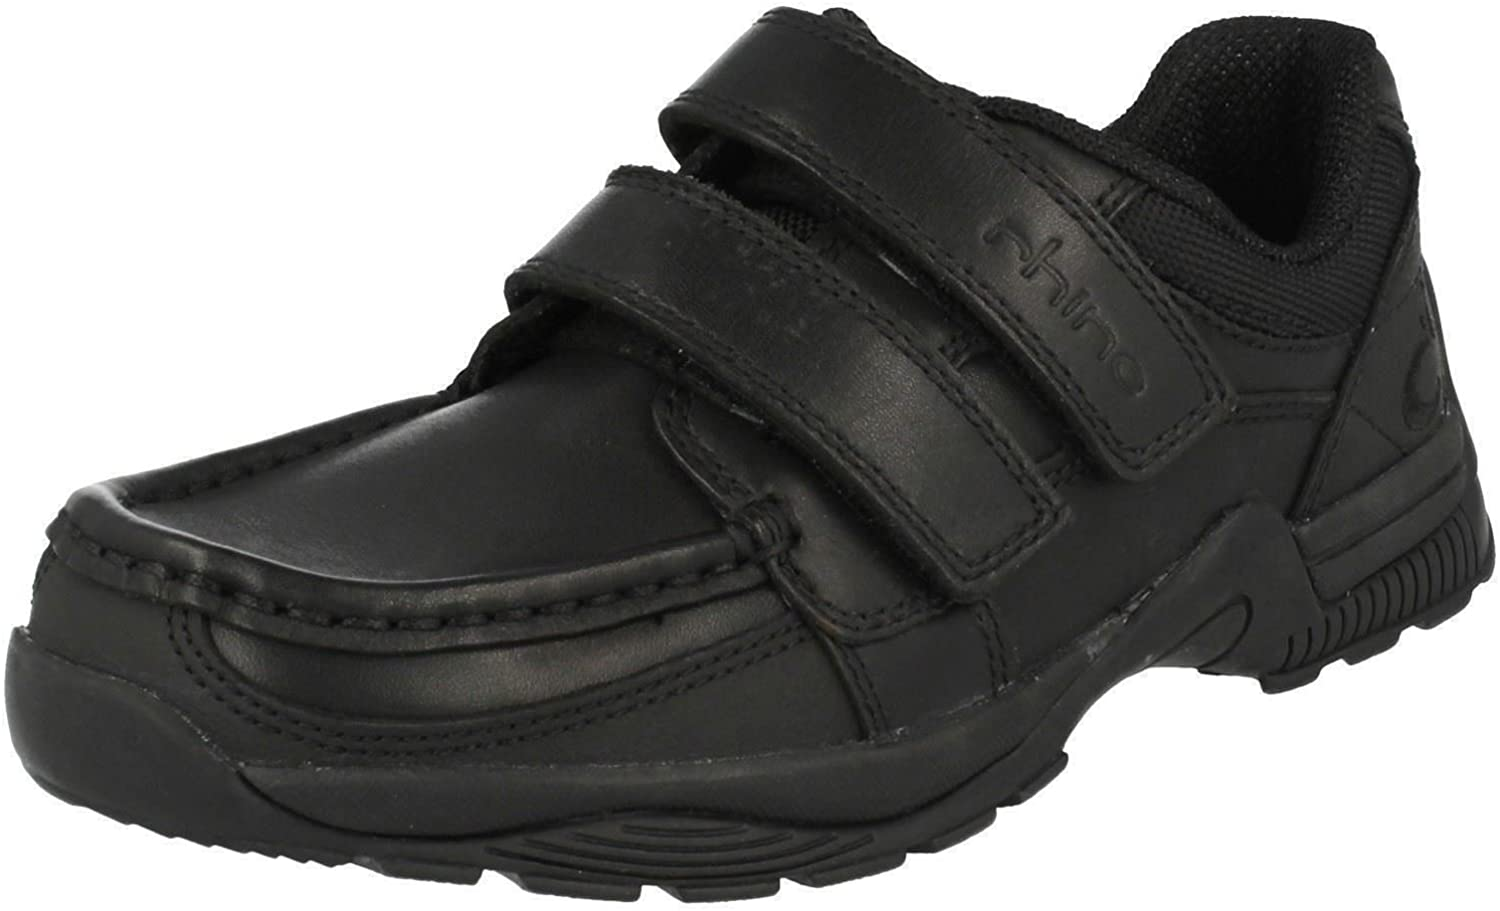 Senior Boys Rhino By Startrite School shoes Miles Black Leather Size 4H